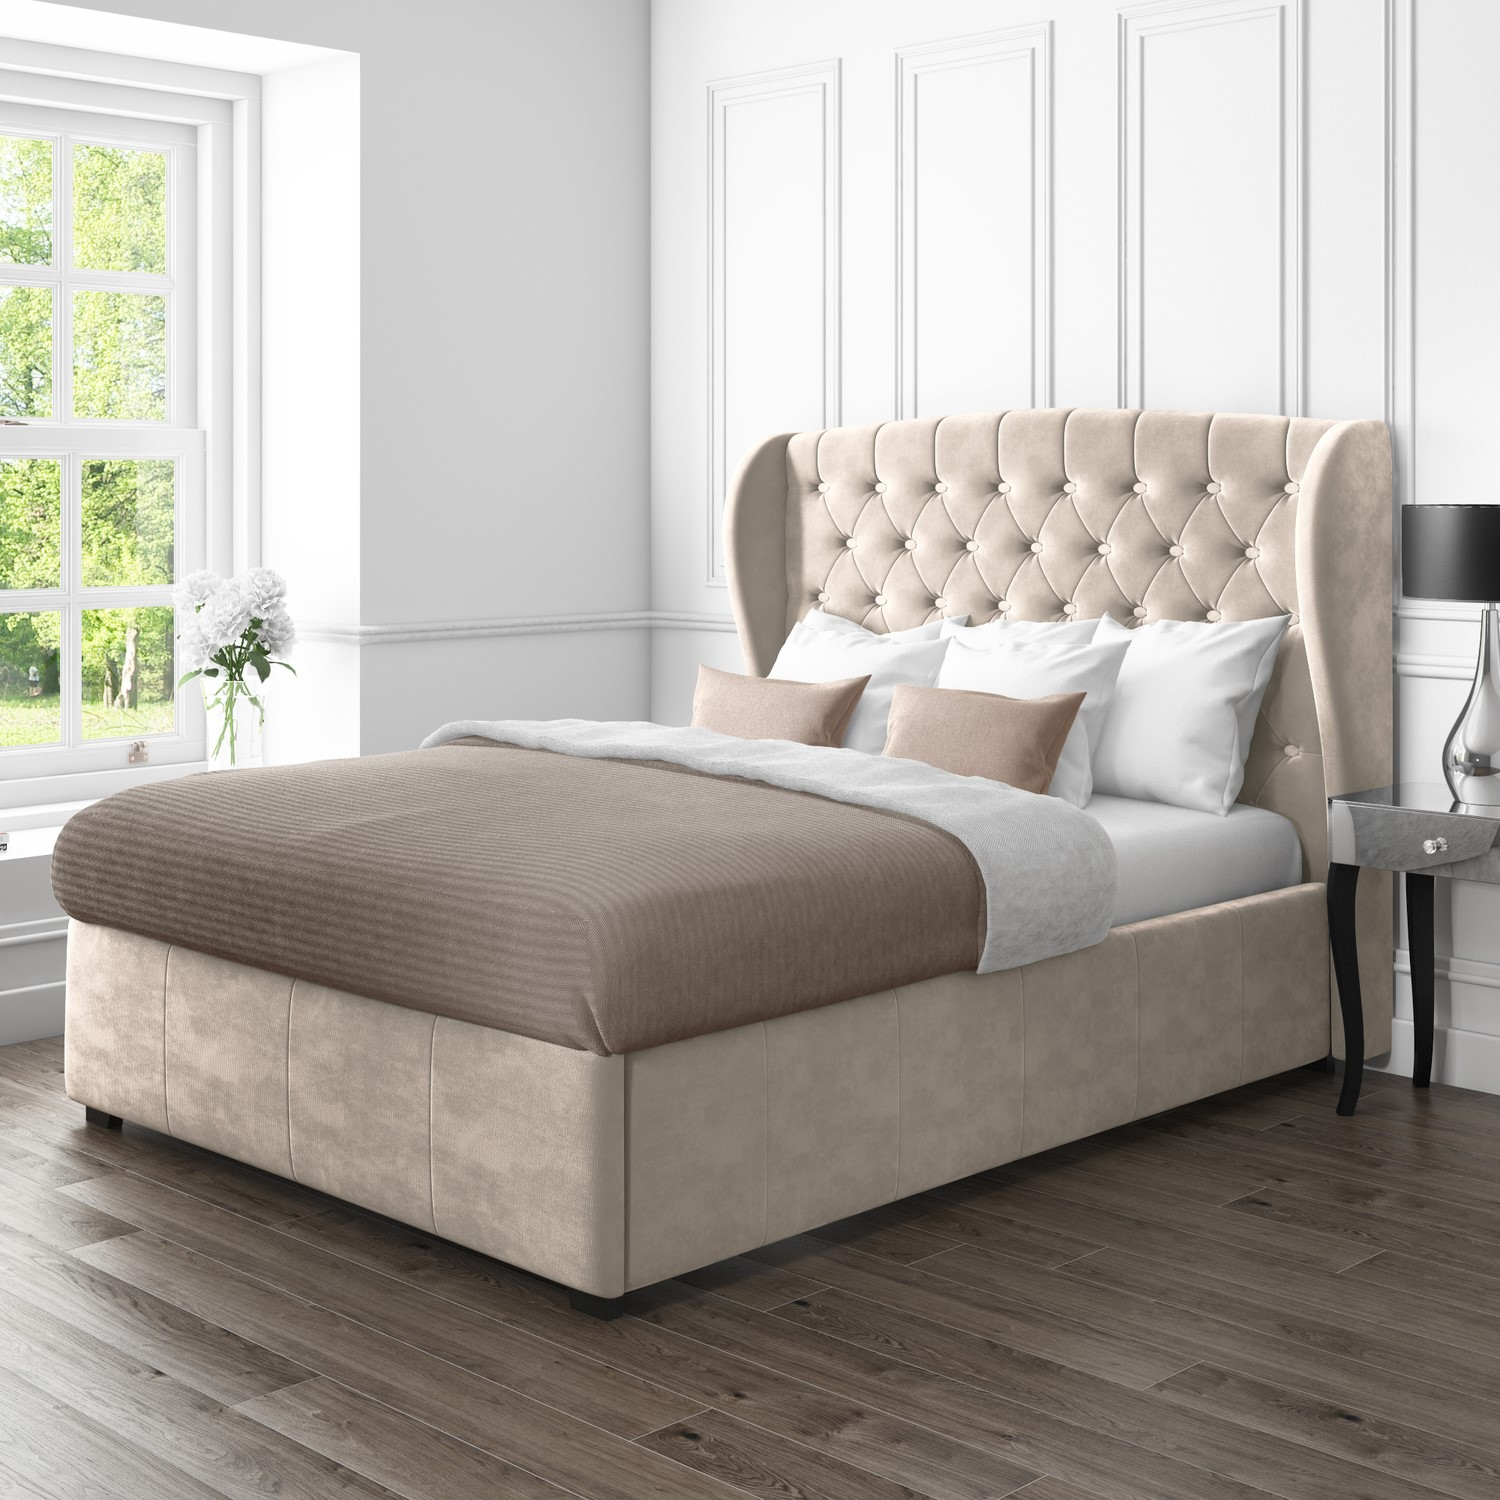 Remarkable Details About Safina Beige King Size Wing Back Ottoman Bed In Velvet Machost Co Dining Chair Design Ideas Machostcouk